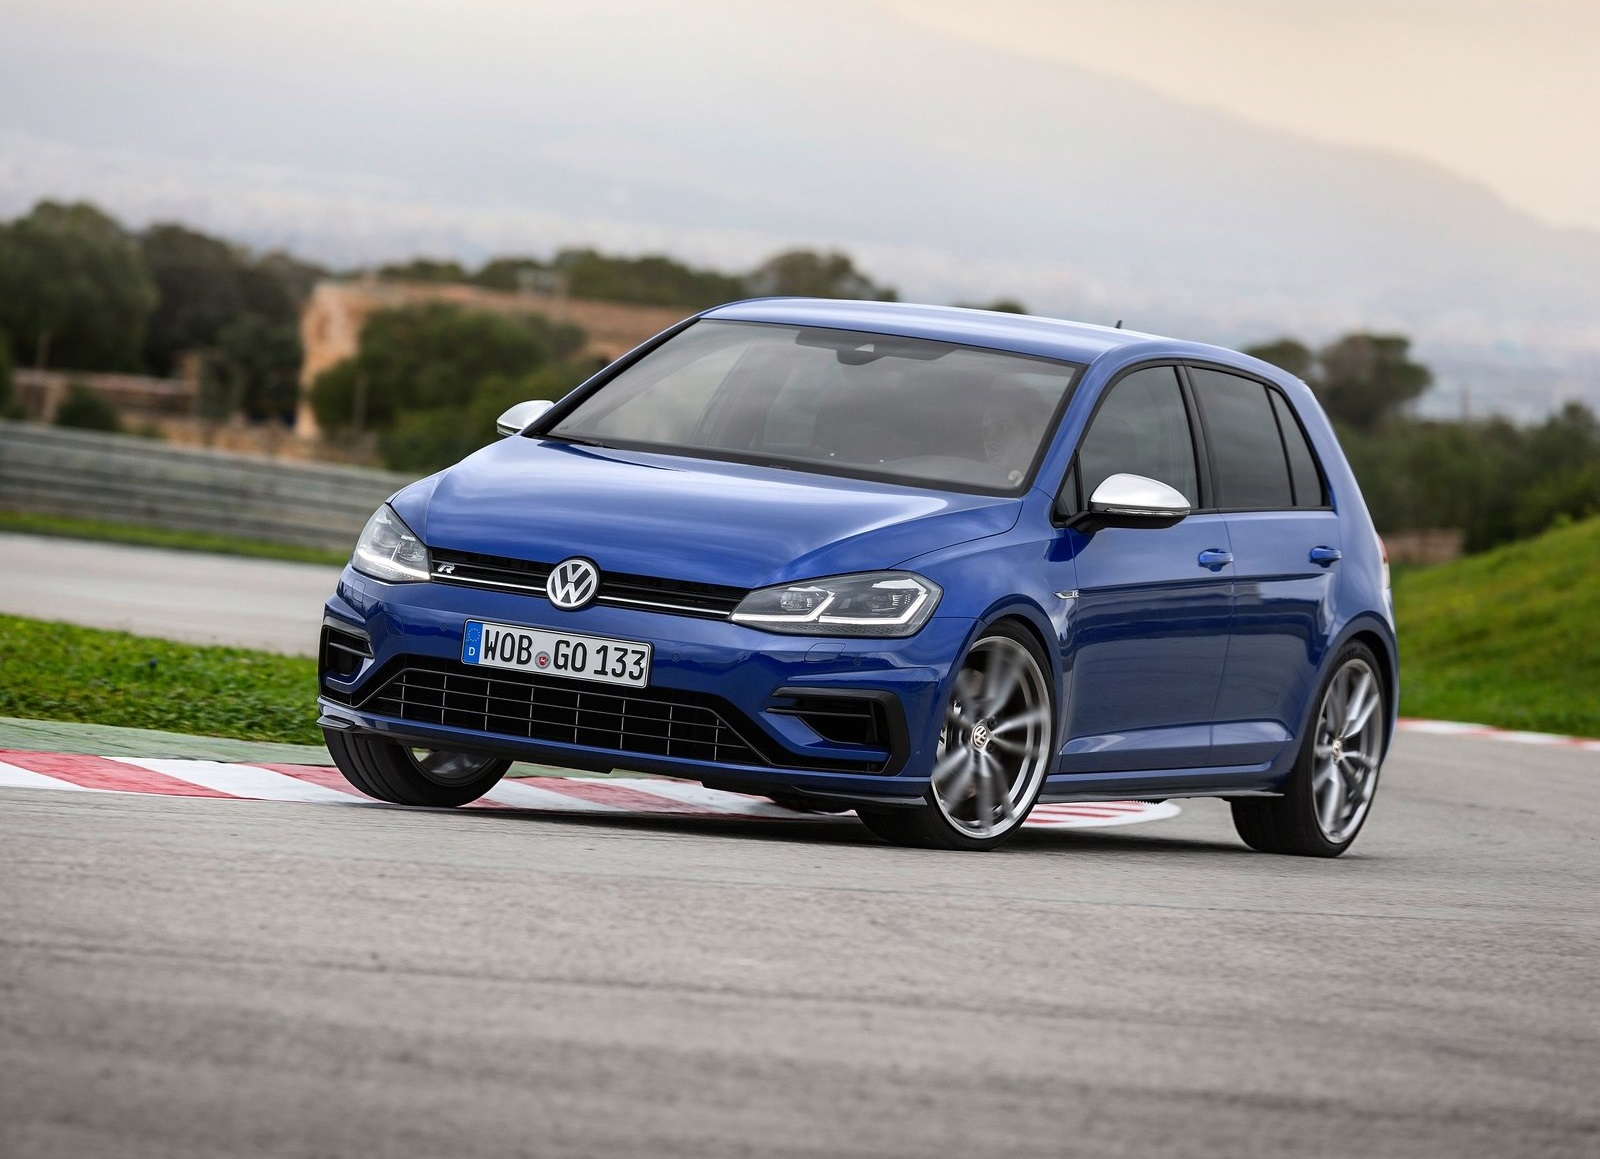 volkswagen golf r qu podemos esperar de l para m xico autos y moda m xico. Black Bedroom Furniture Sets. Home Design Ideas